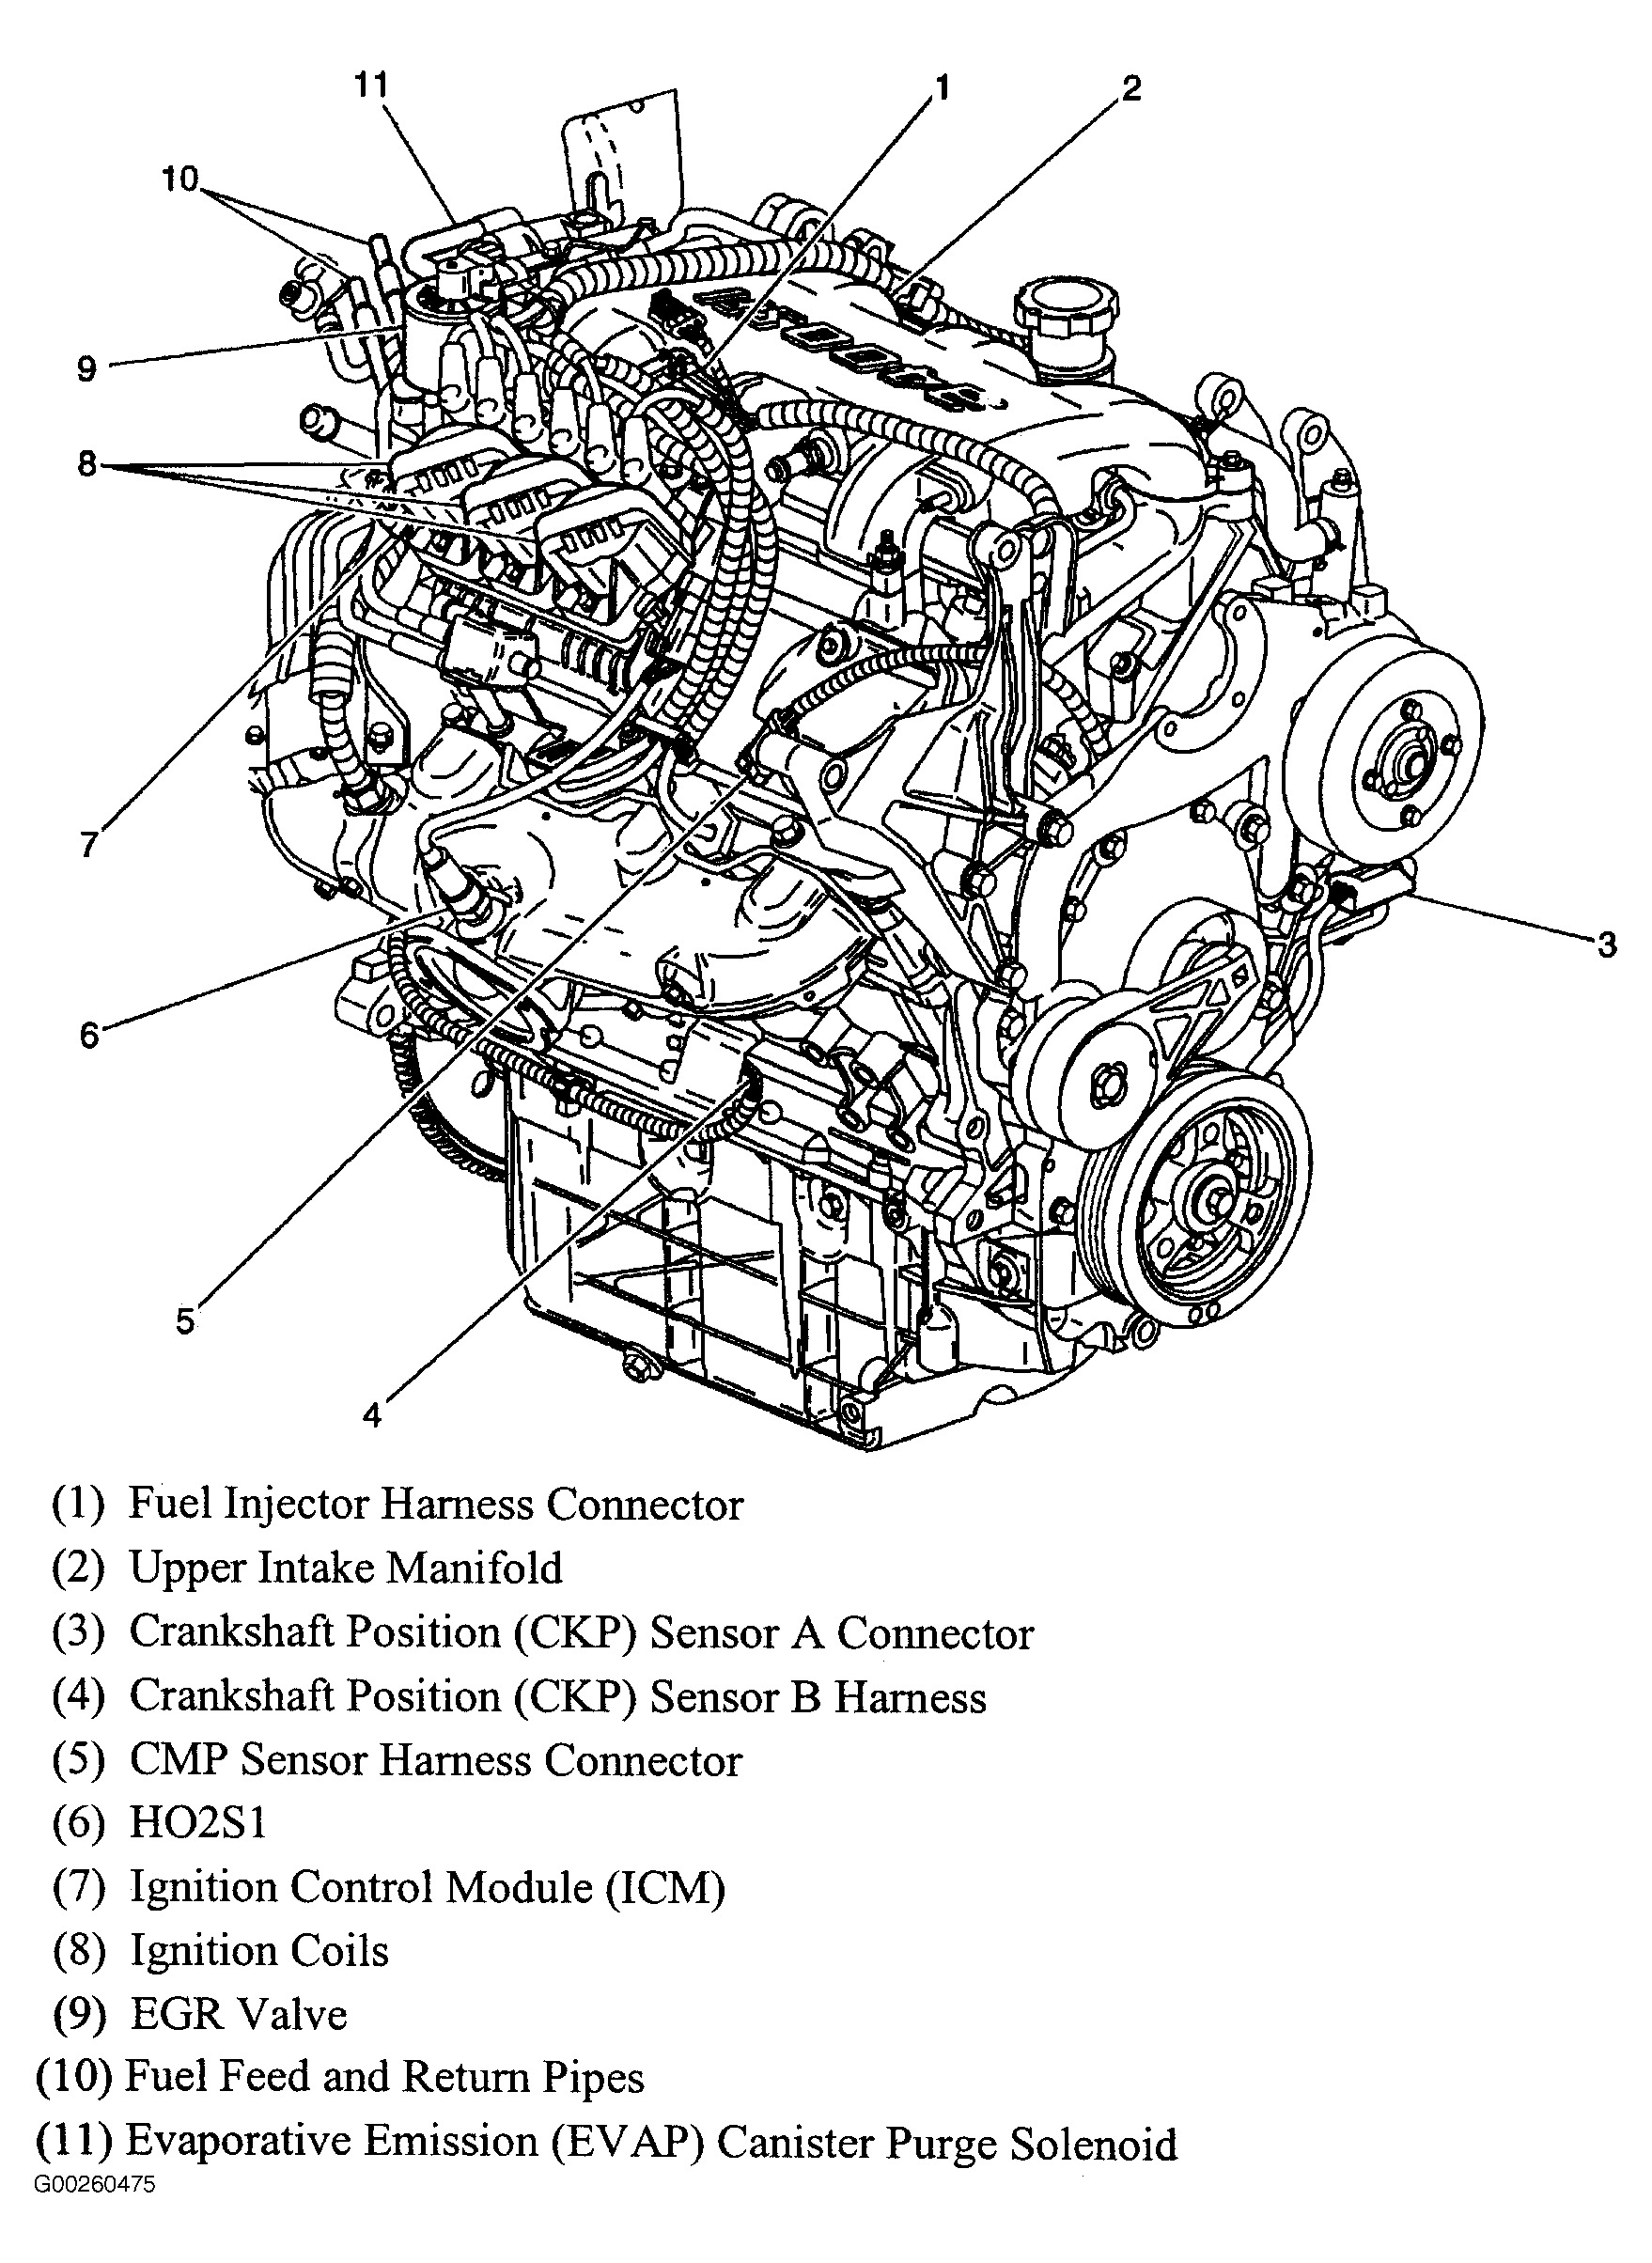 Original on 1996 Honda Passport Wiring Diagram